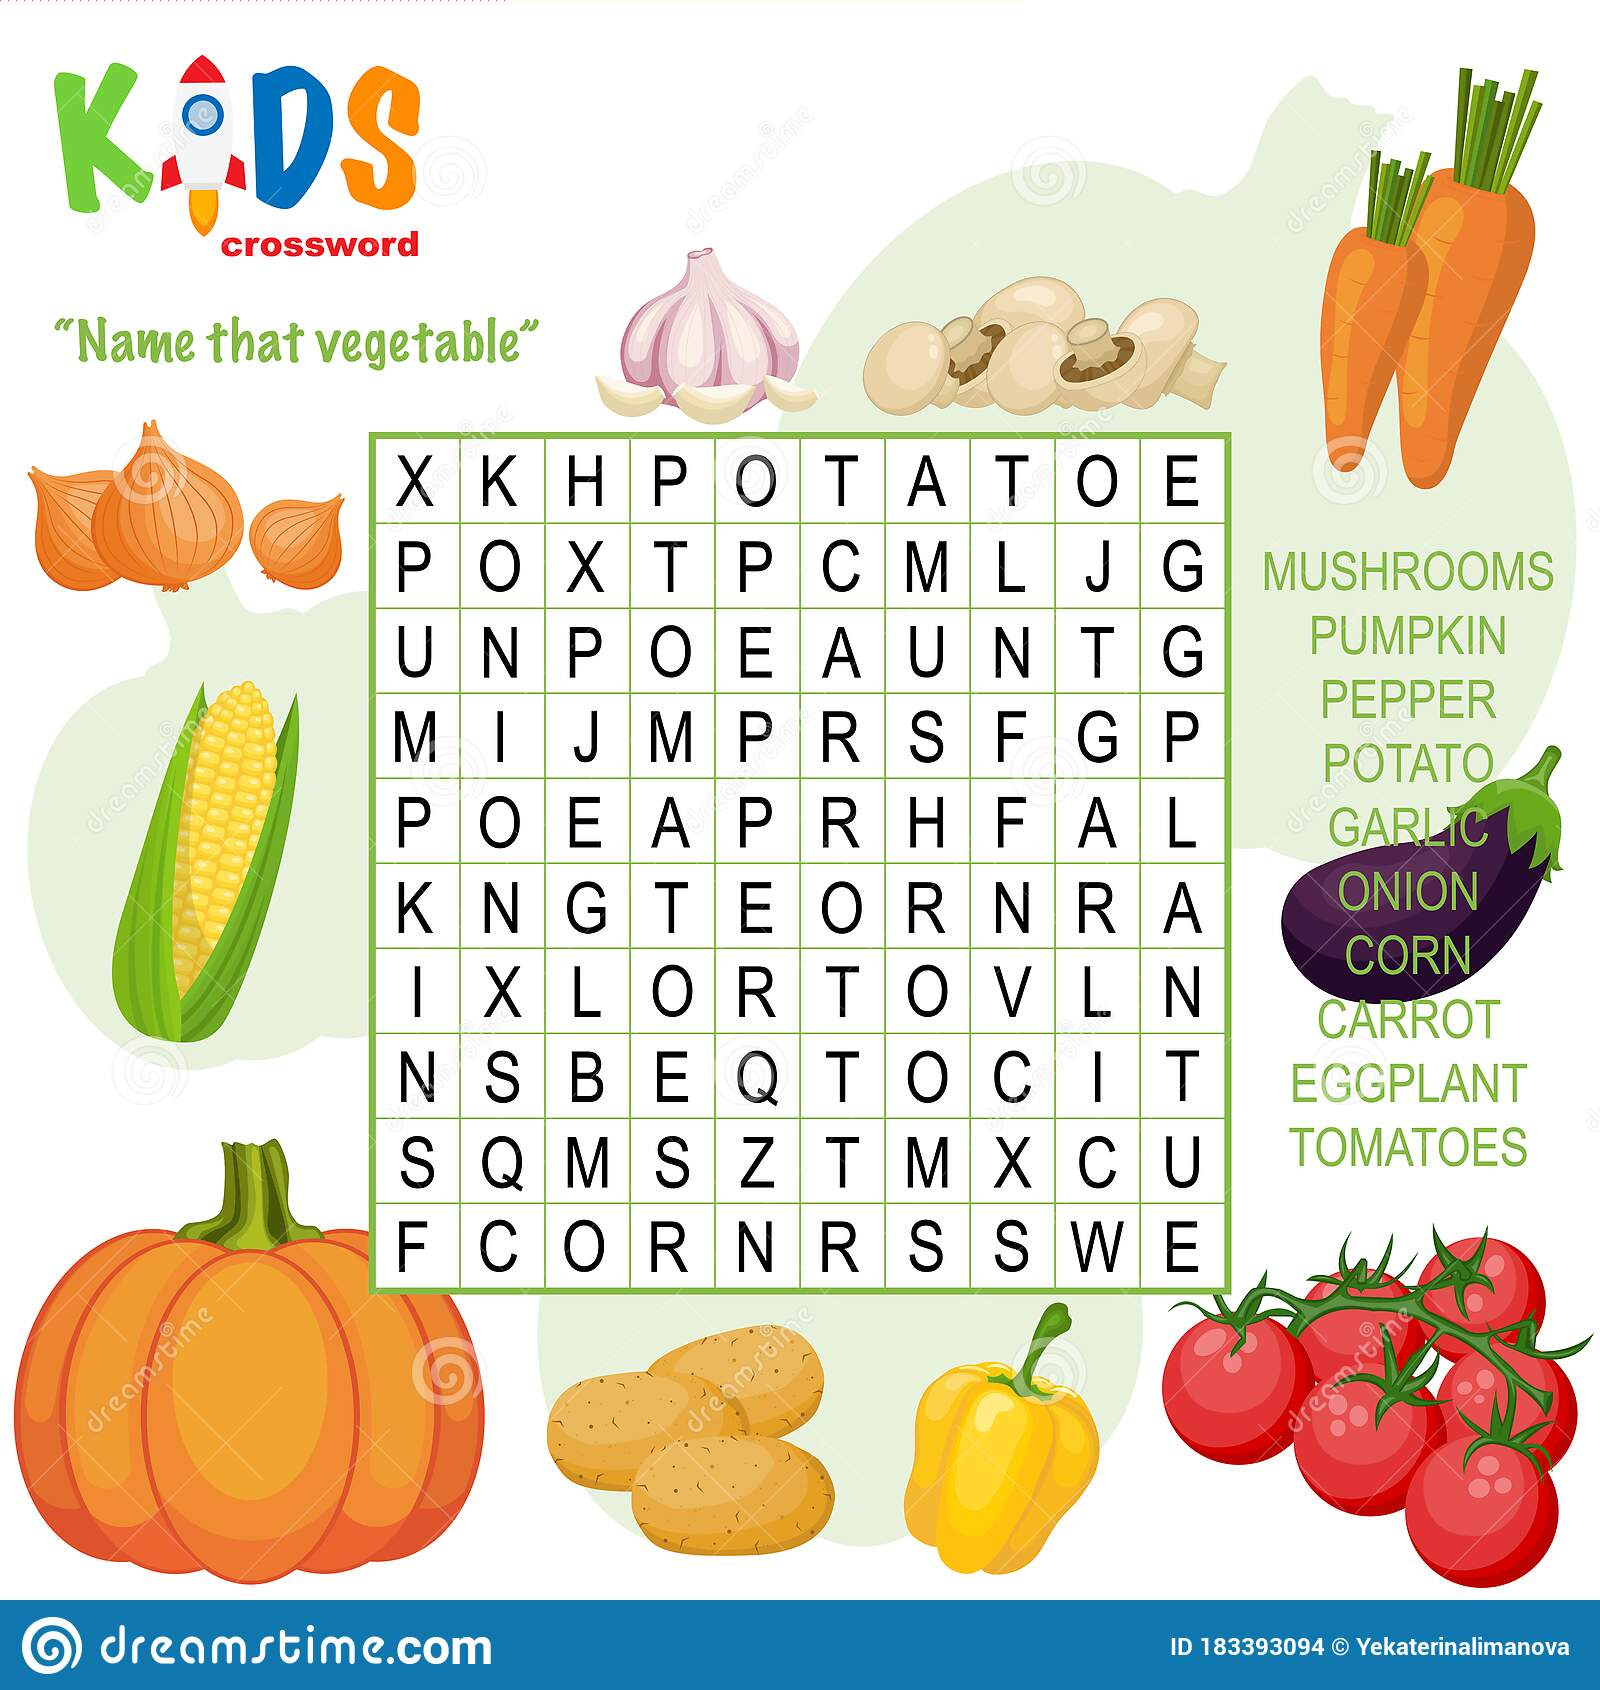 Easy Word Search Crossword Puzzle Name That Vegetable